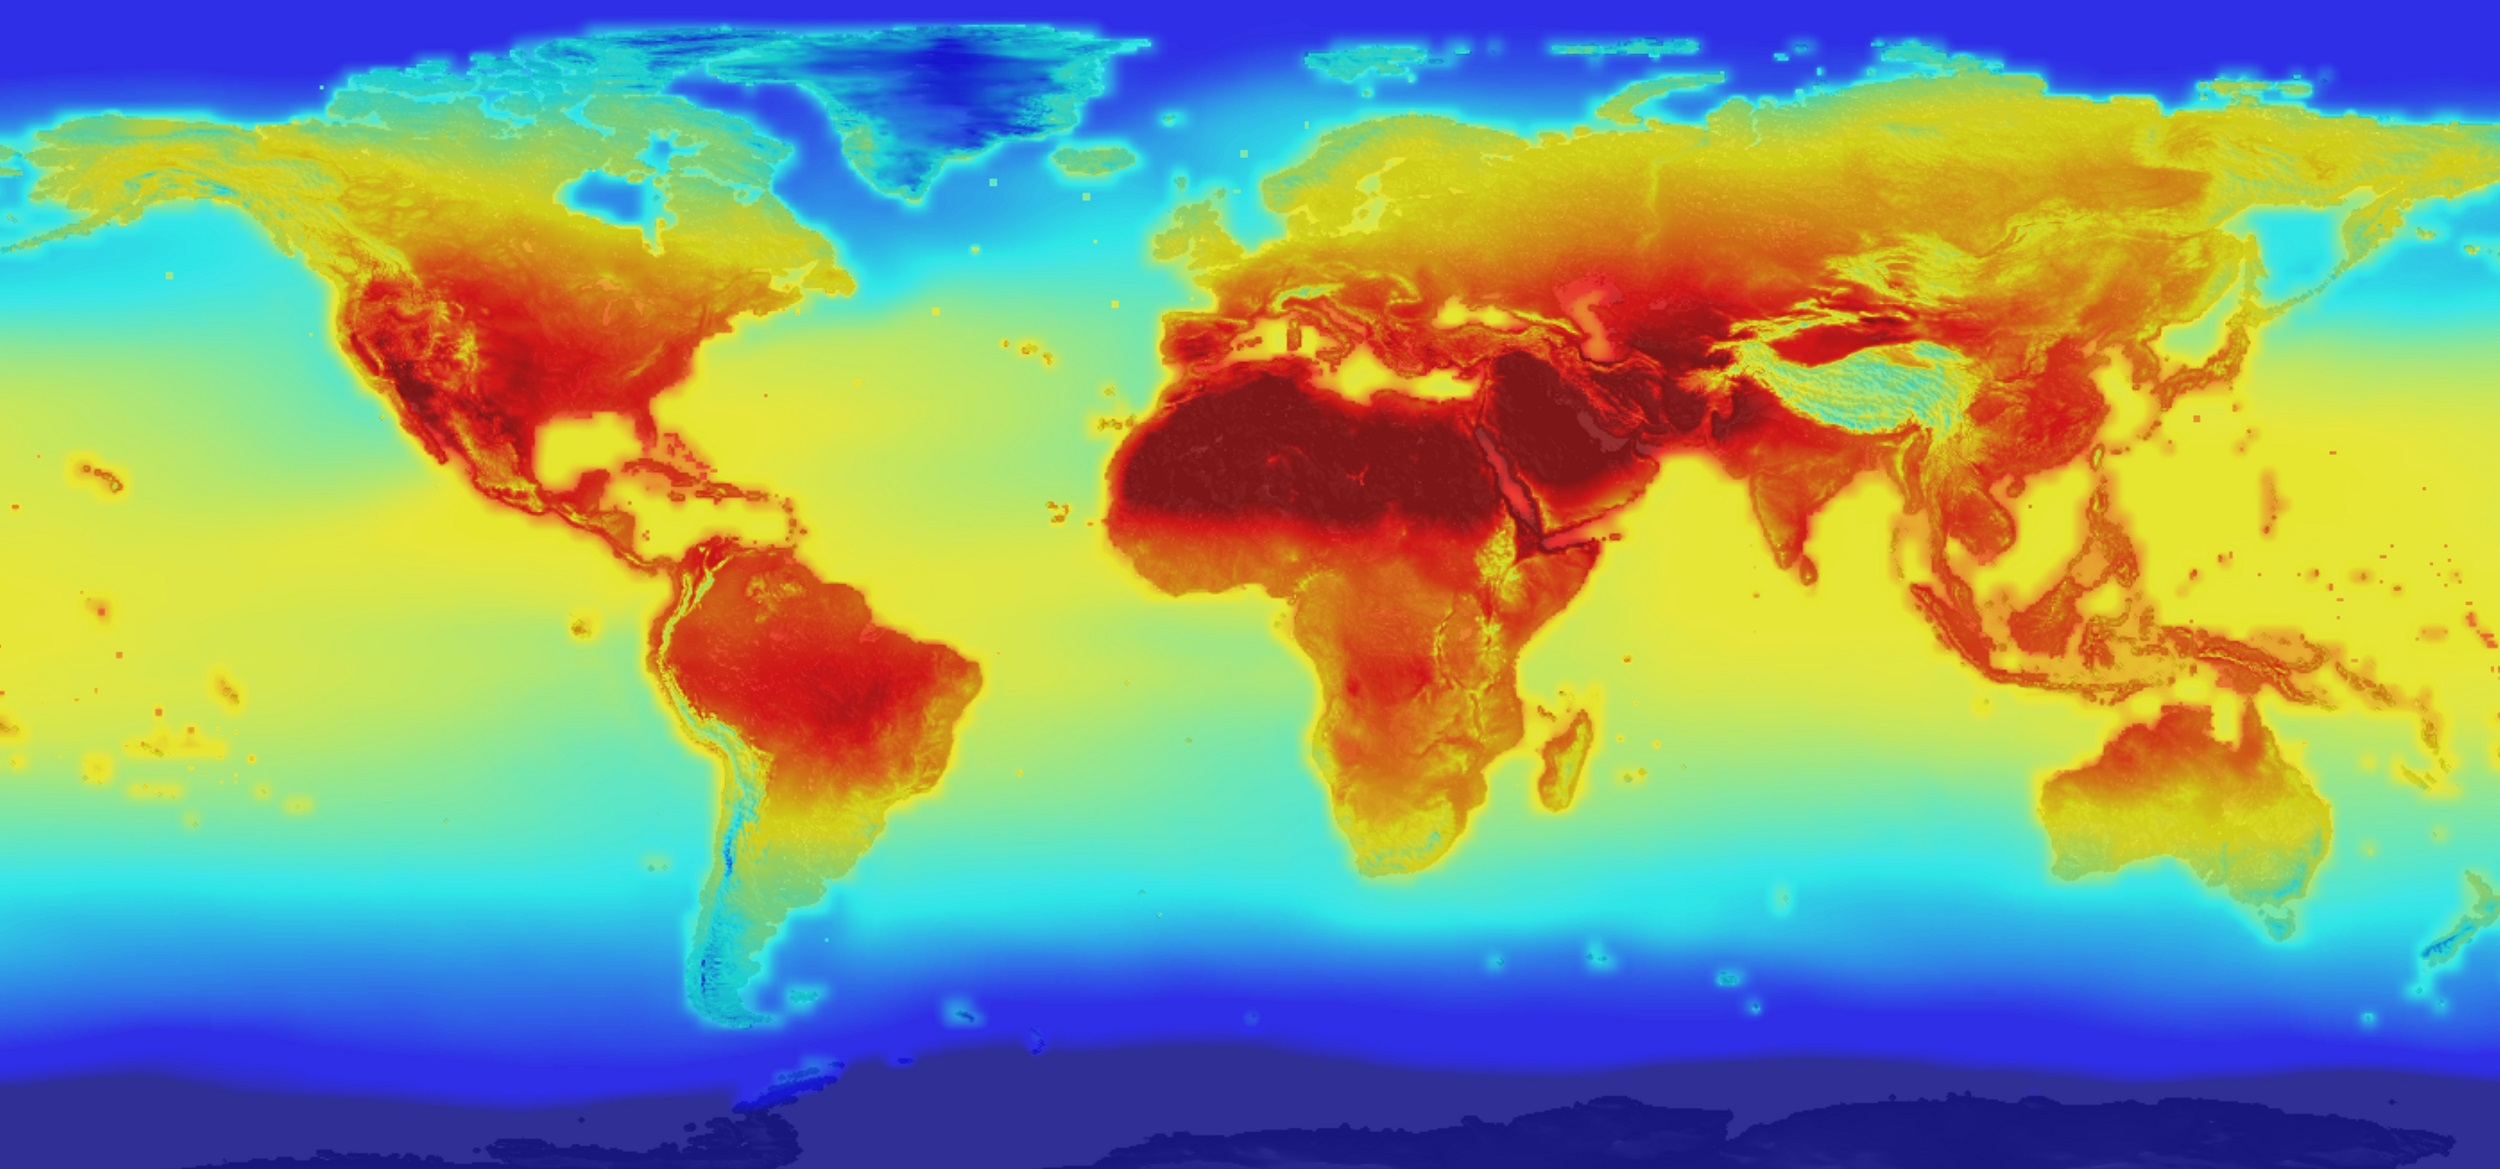 "Image credit: NASA ""The new NASA global data set combines historical measurements with data from climate simulations using the best available computer models to provide forecasts of how global temperature (shown here) and precipitation might change up to 2100 under different greenhouse gas emissions scenarios."" Link to data set:  https://cds.nccs.nasa.gov/nex-gddp/"